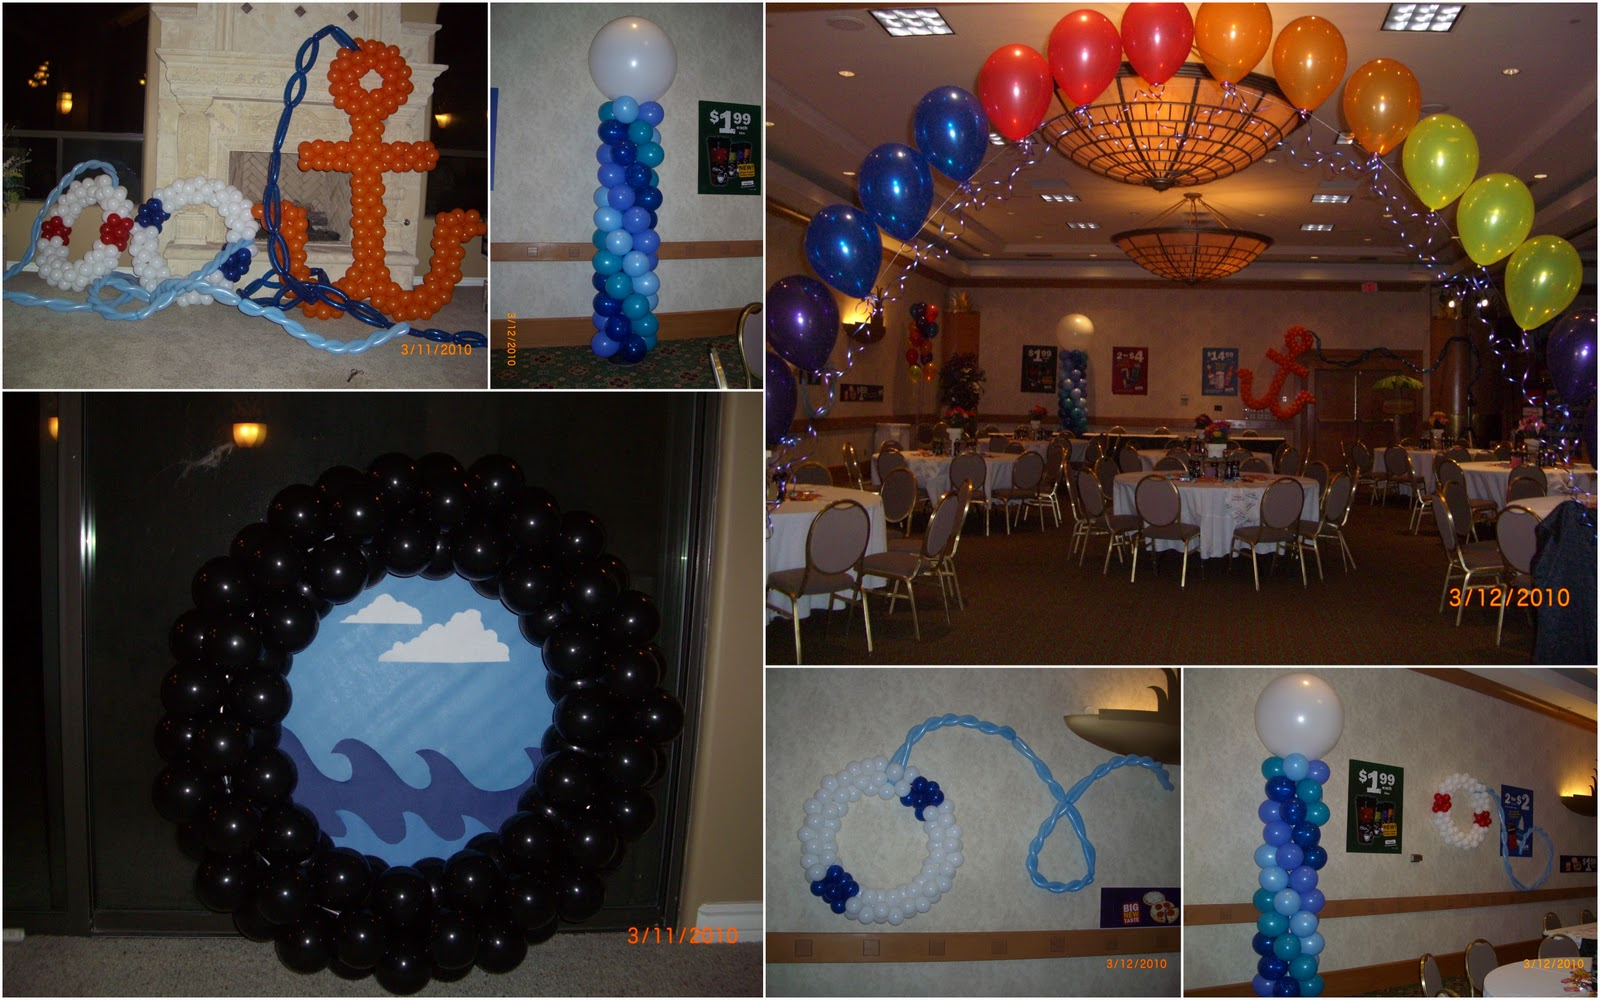 cherri u0026 39 s balloons  cruise ship party time